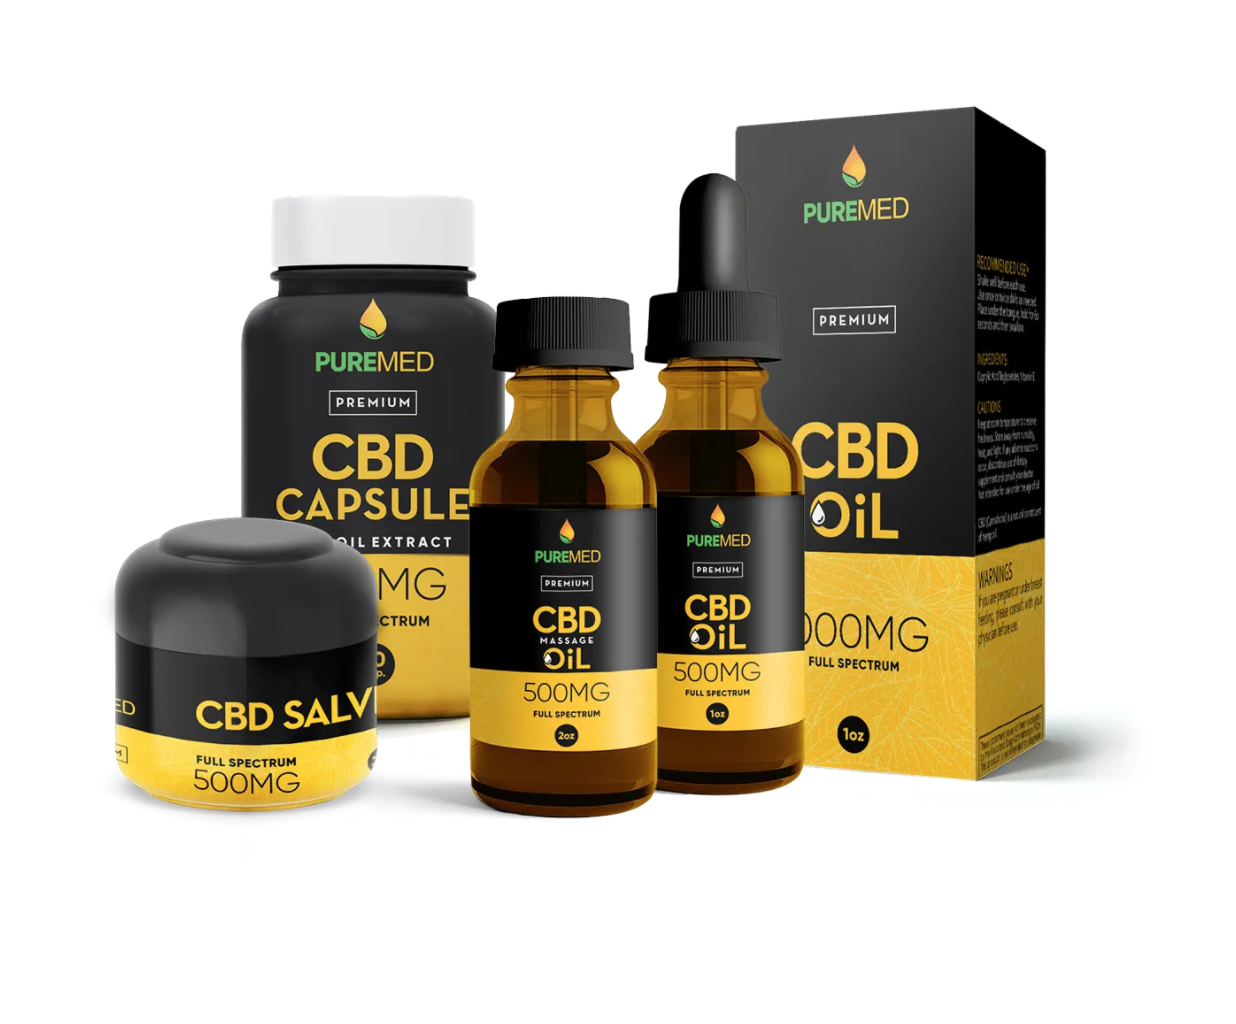 5 Reasons Why You Should Try CBD Products